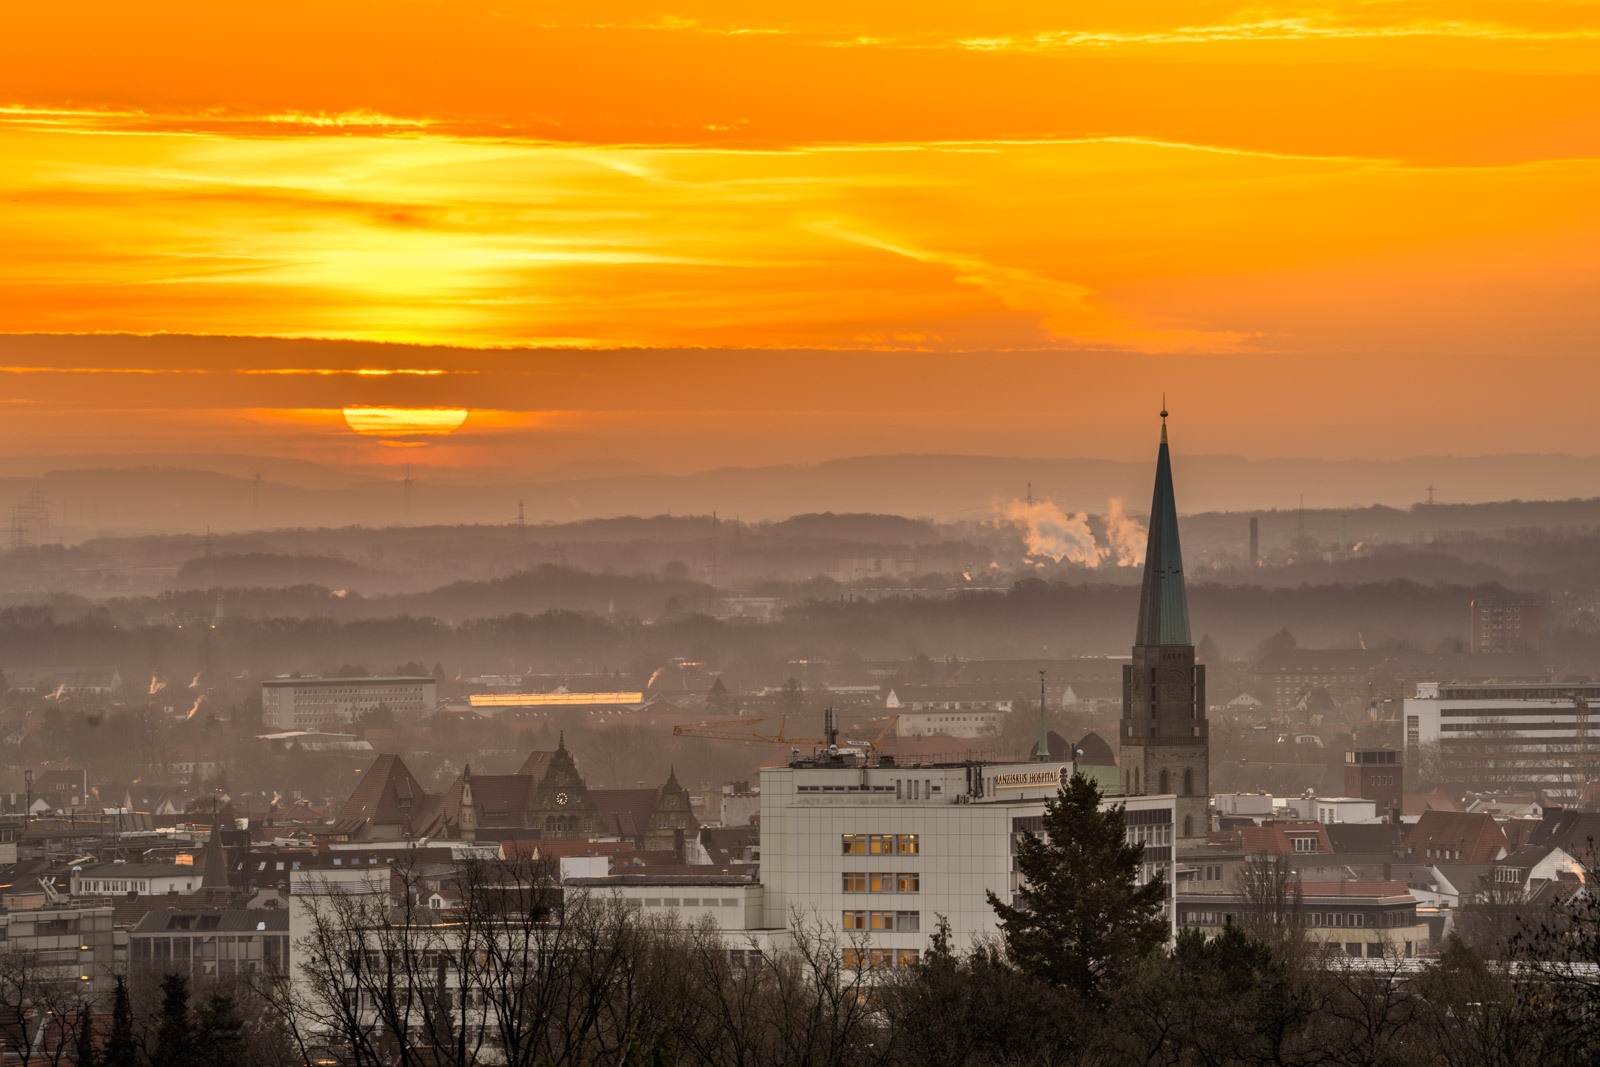 Sunrise over the city centre on 20 February 2021 (Bielefeld, Germany).